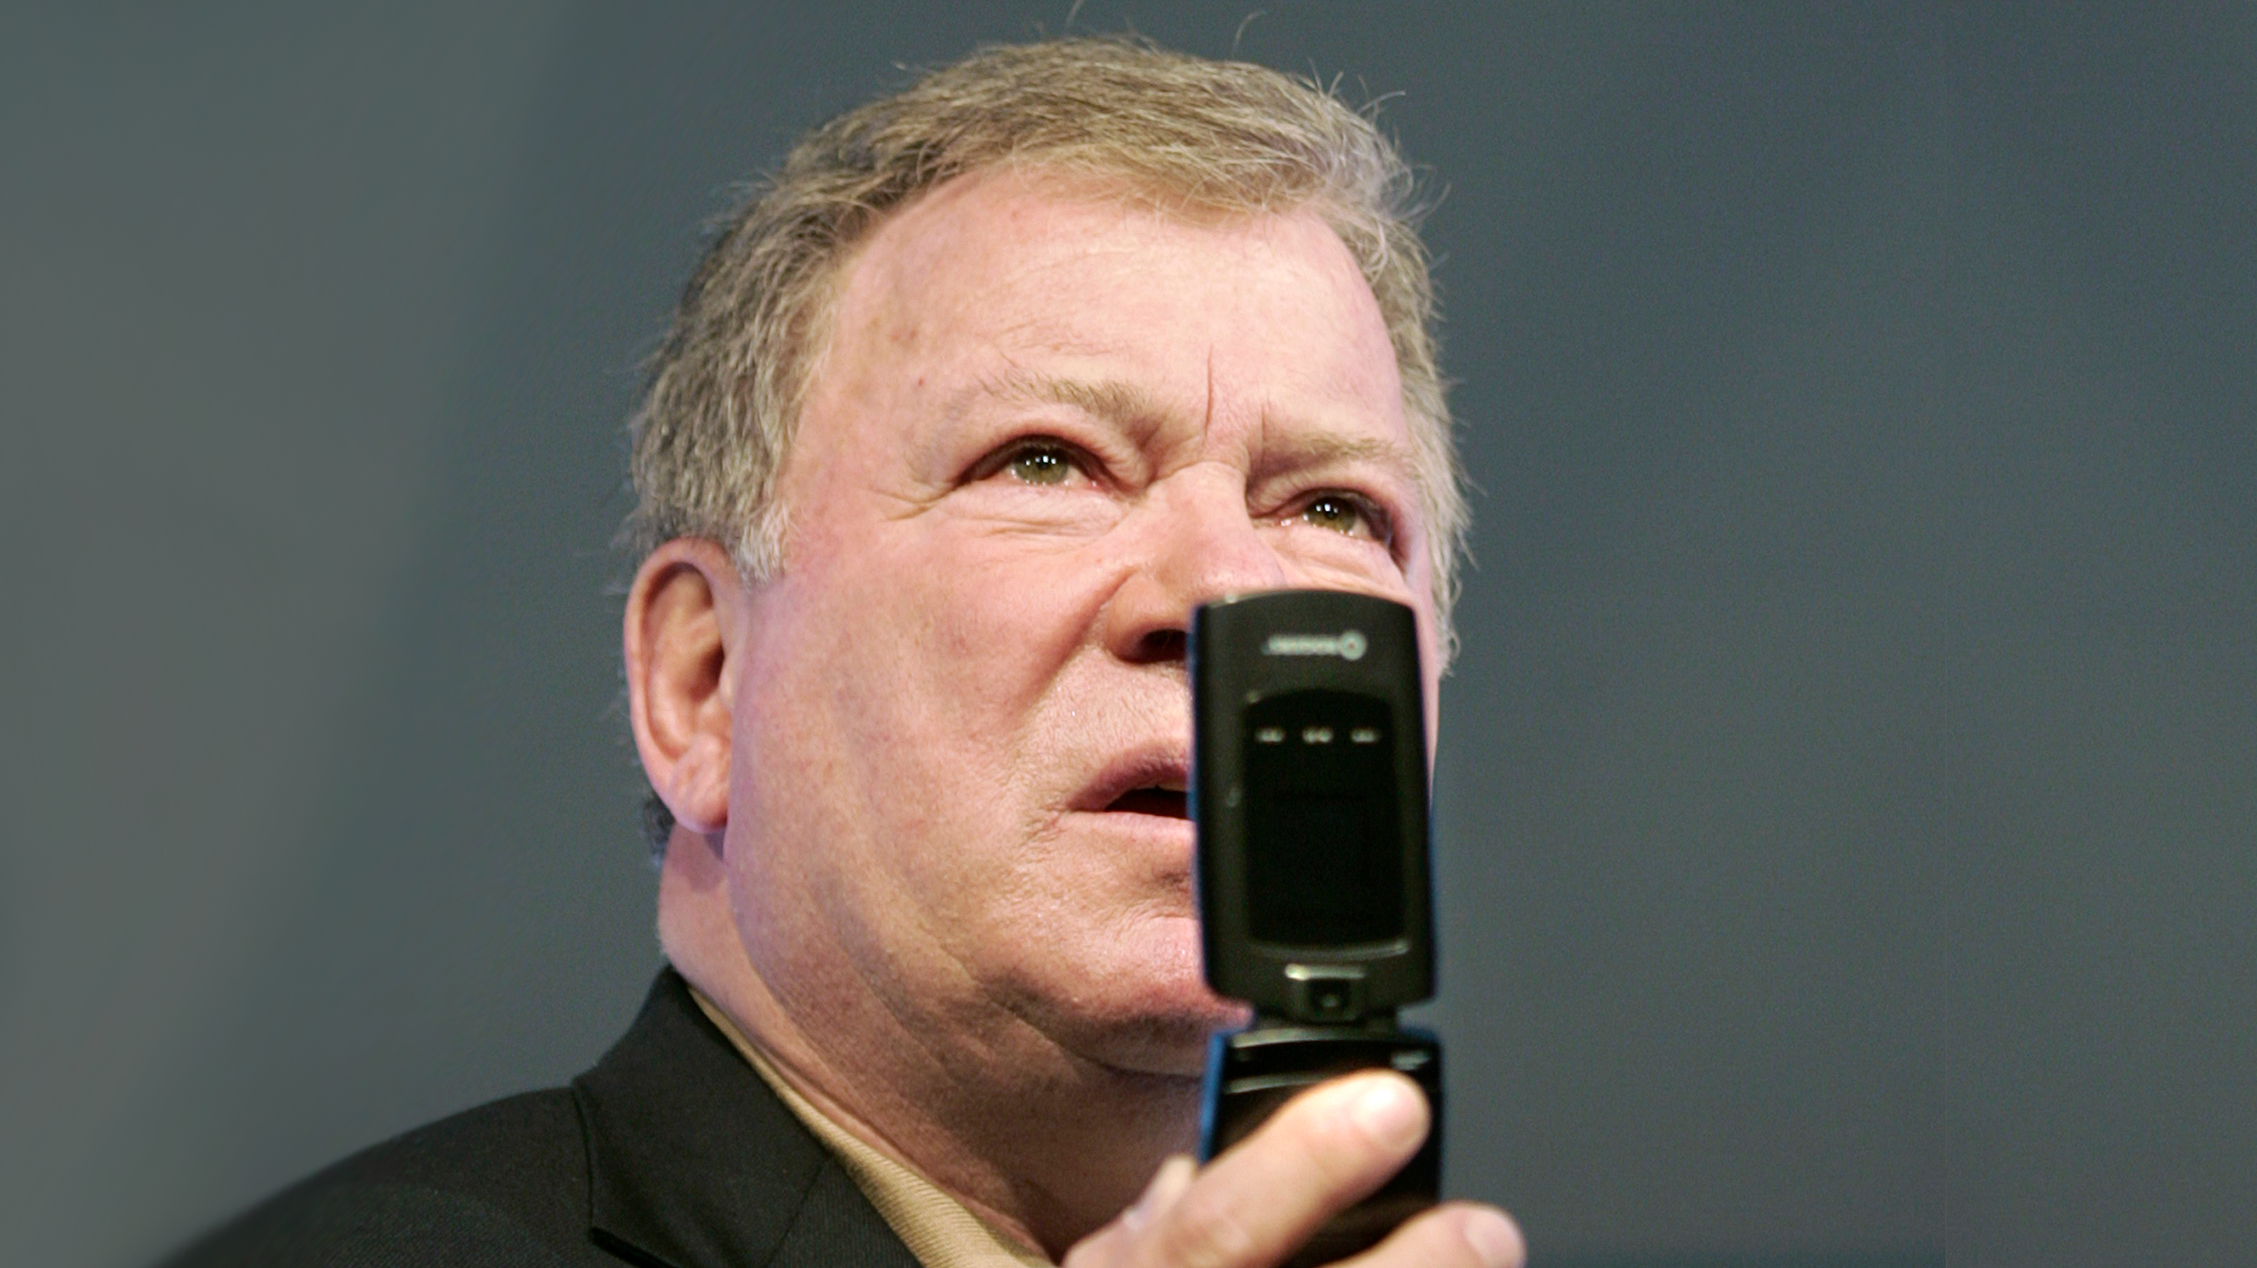 William Shatner, in a pose similar to his Star Trek character Captain Kirk using his communicator, unveils North America's first real-time video conferencing cell phone during a news conference in Toronto April 2, 2007.